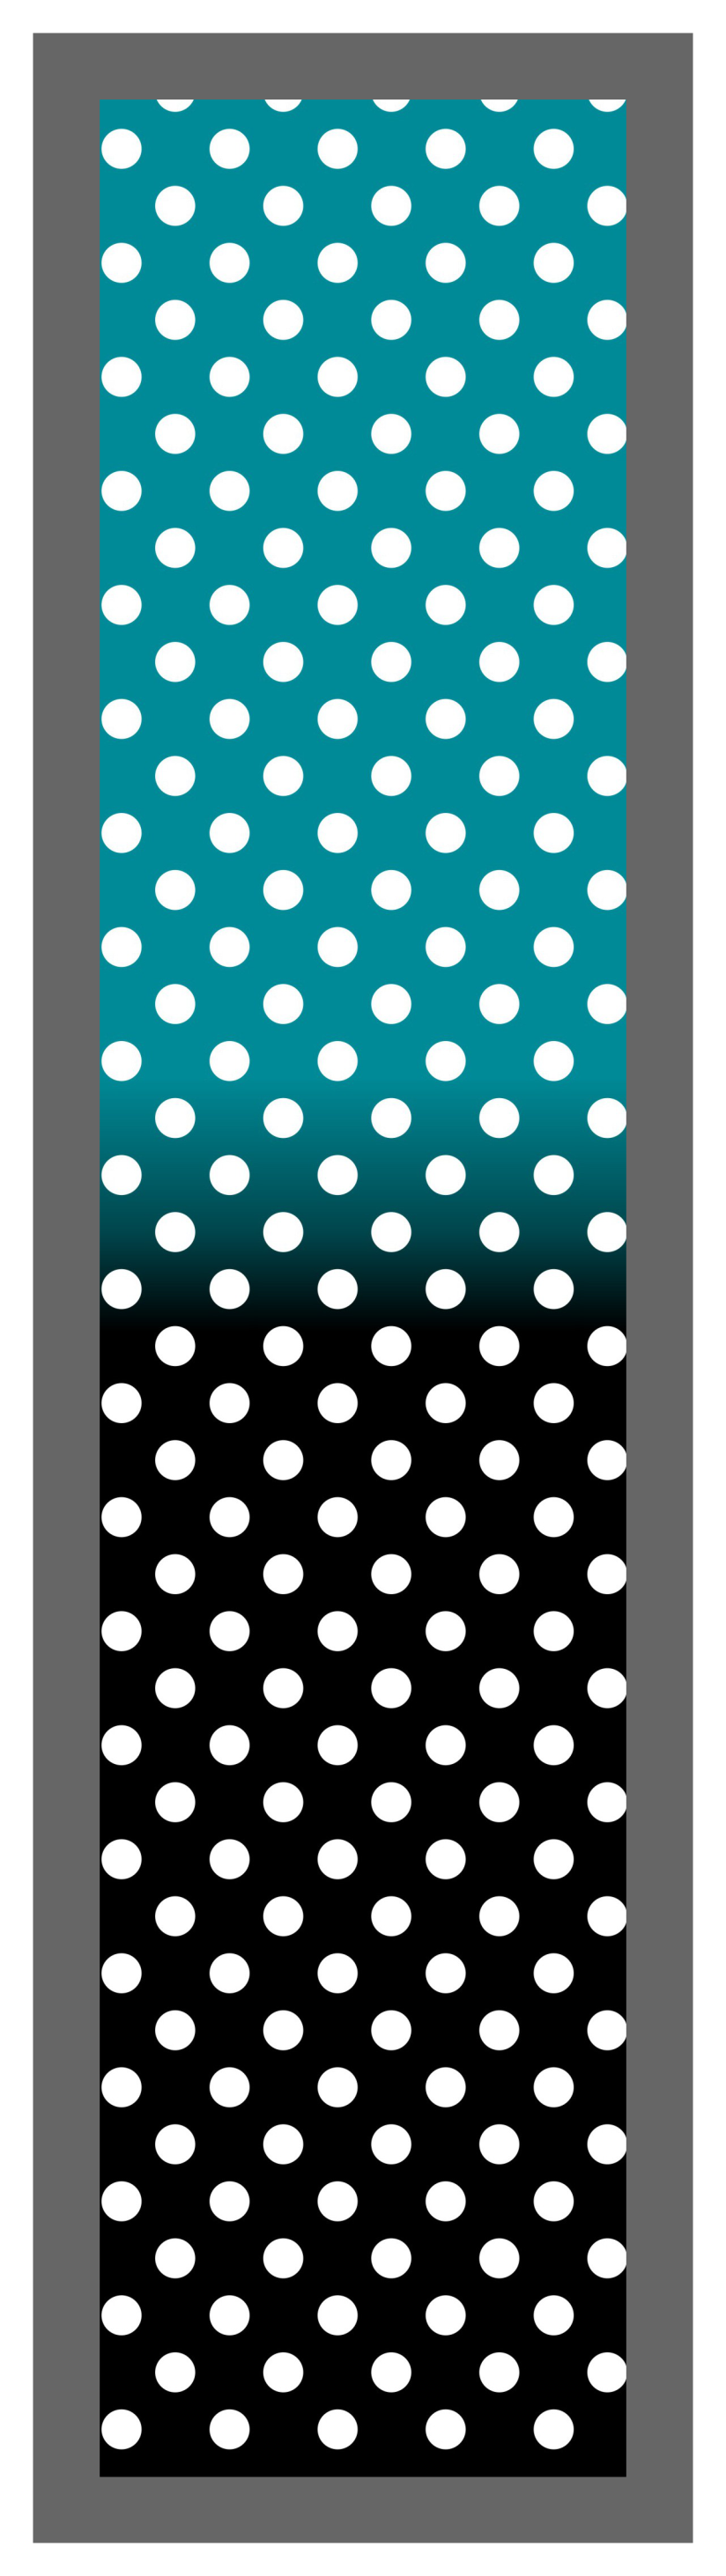 Teal-Black Ombre Polka Dots